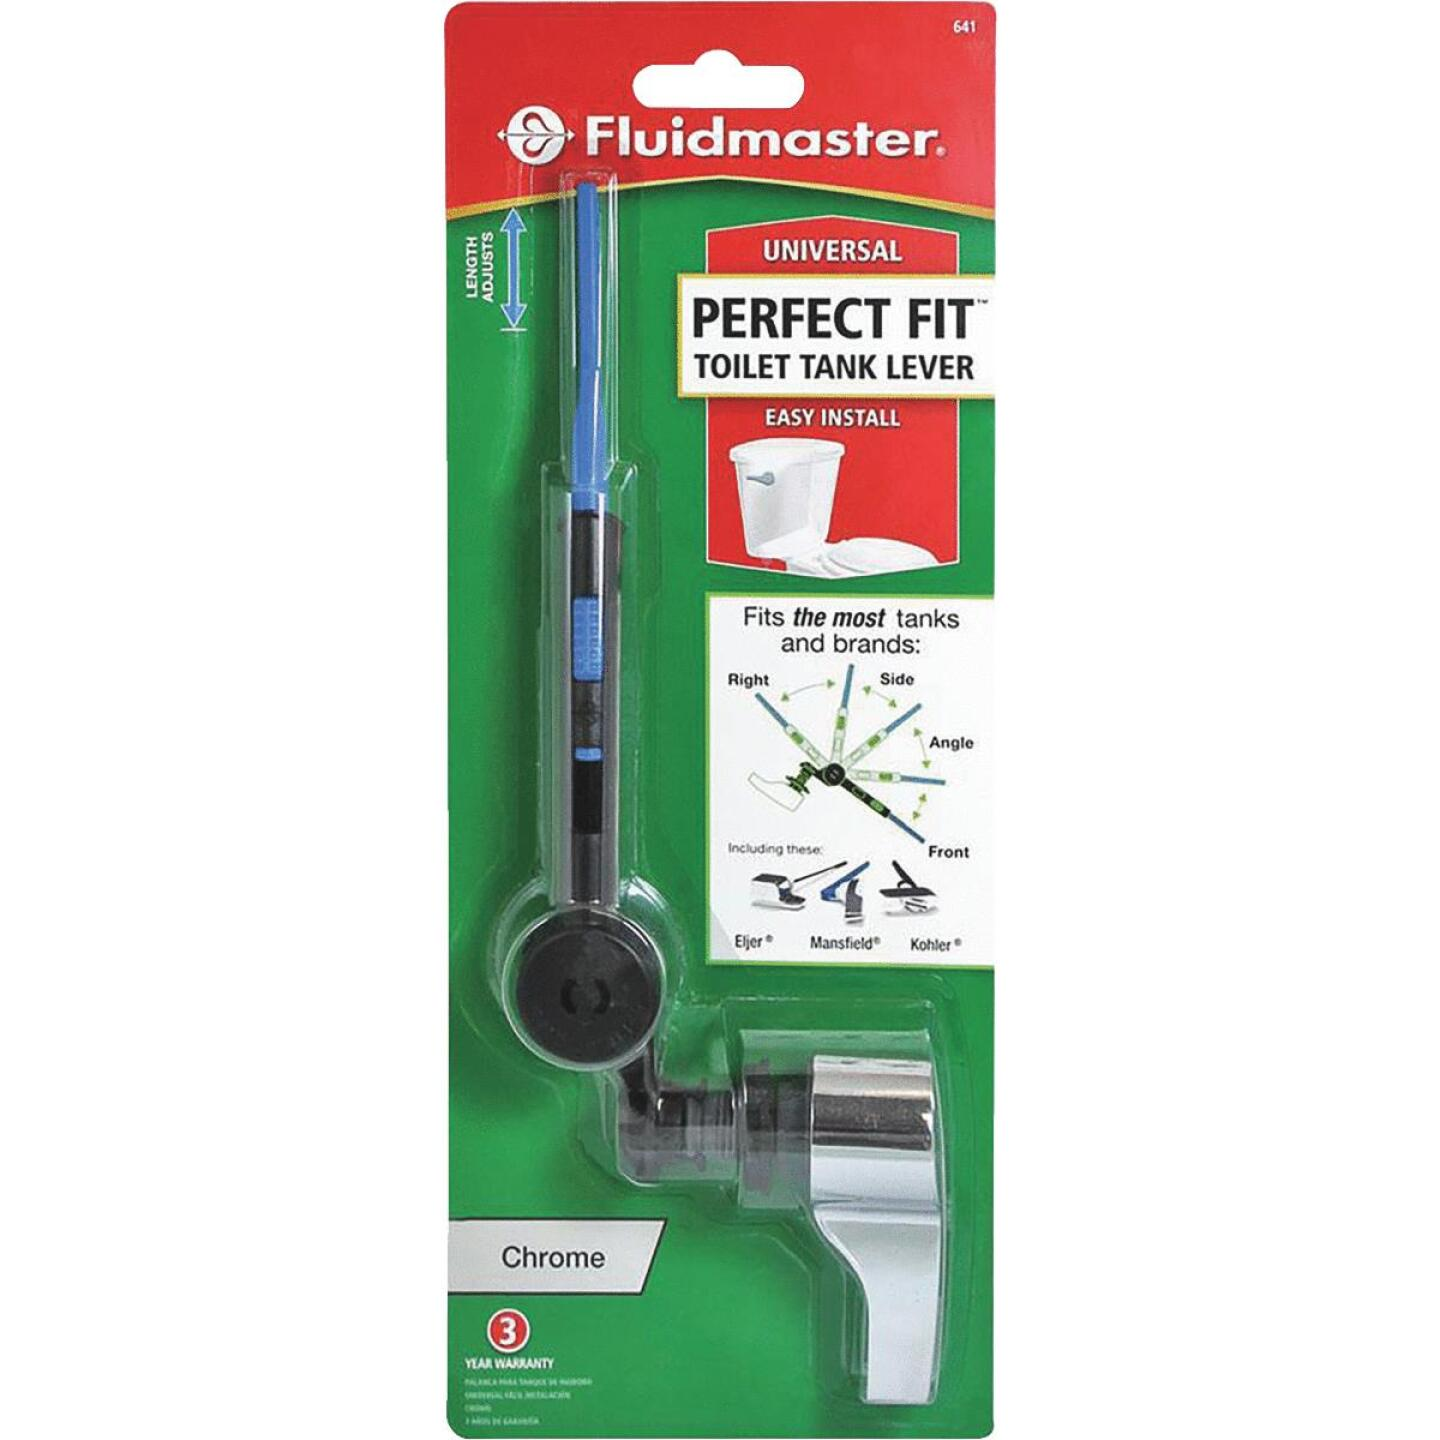 Fluidmaster Perfect Fit Chrome Toilet Tank Lever Image 2